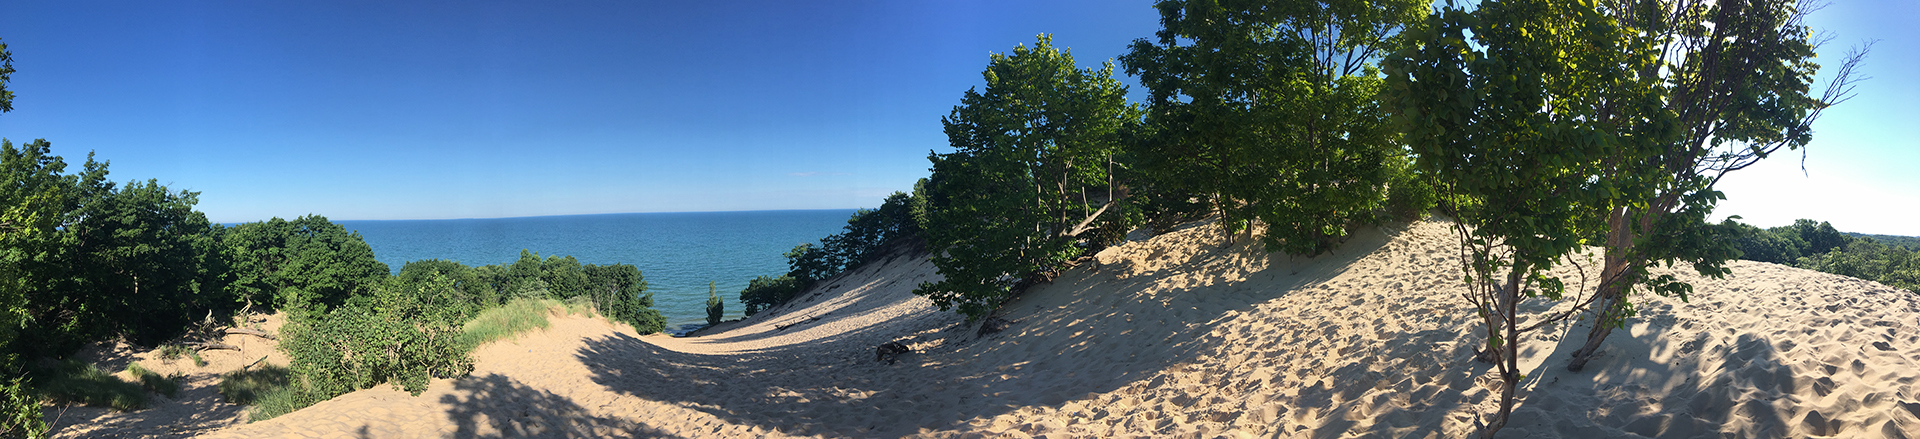 lakemichigan-pano